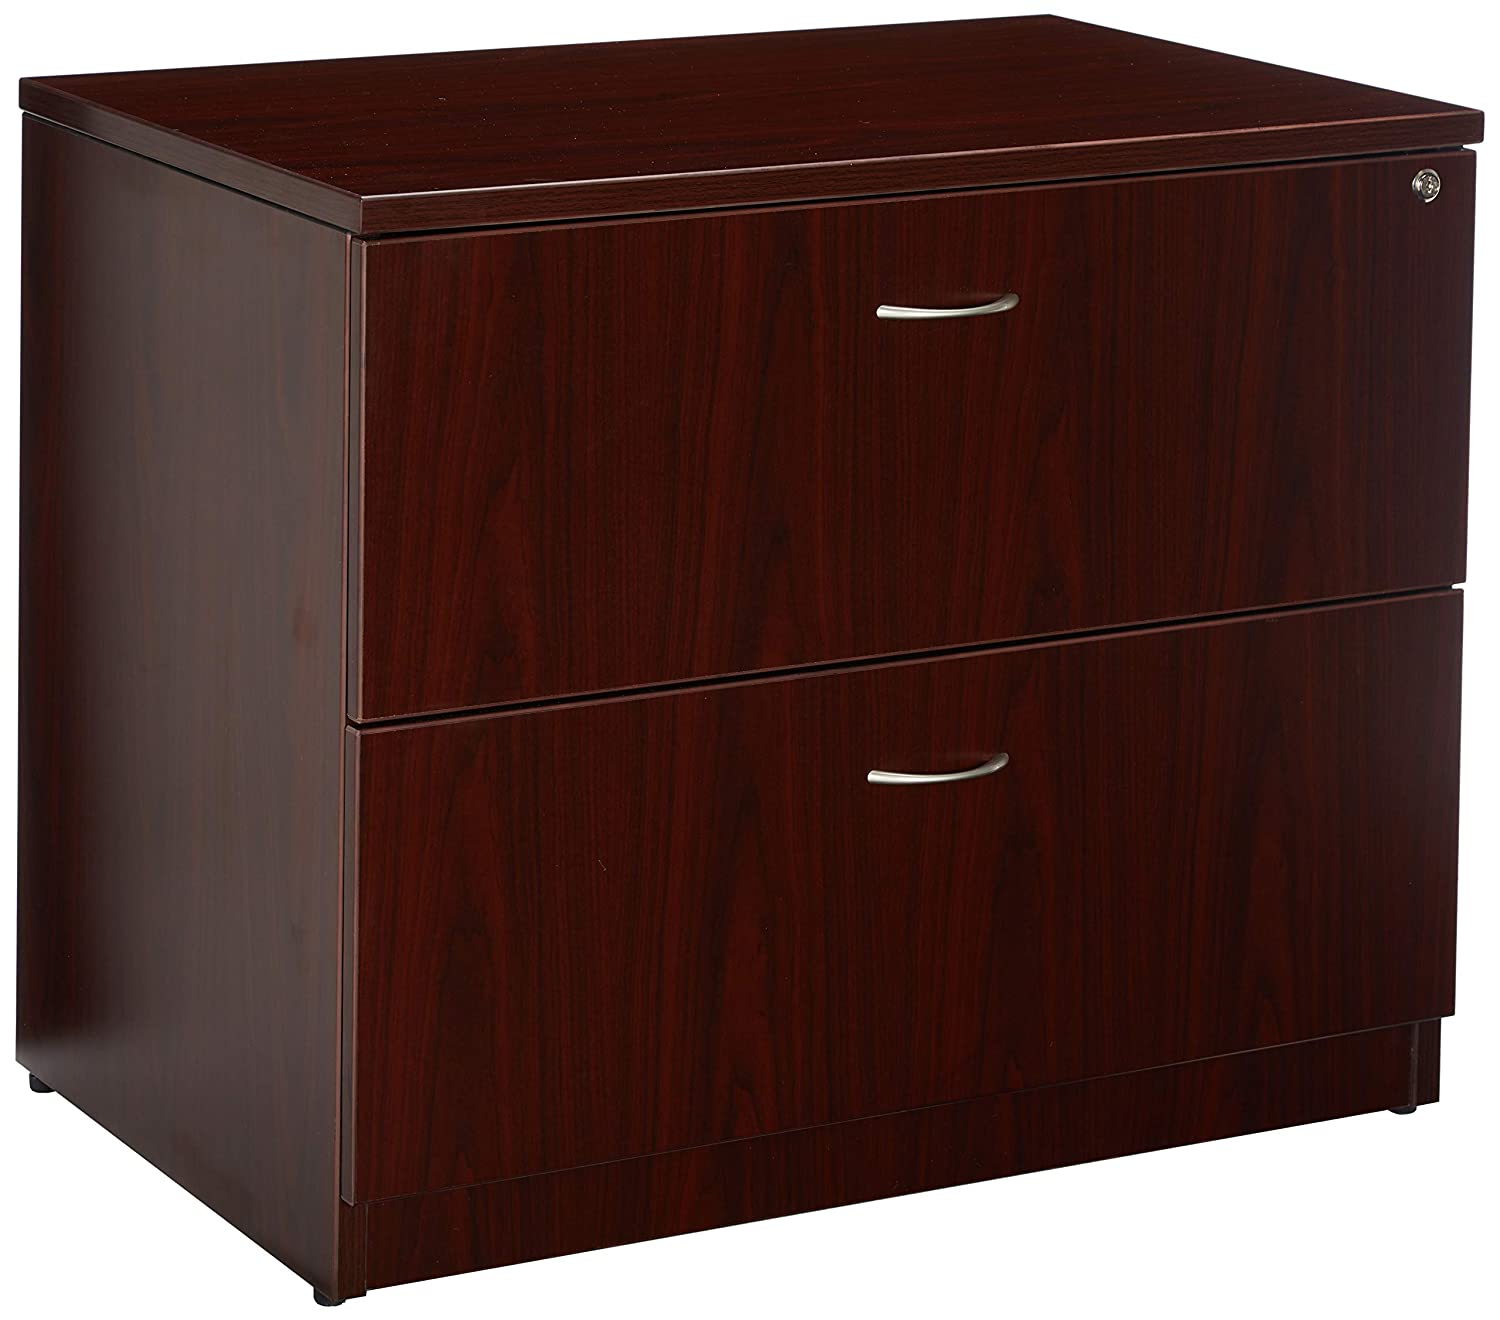 Lorell Lateral File, 35 by 22 by 29-1/2-Inch, Mahogany S.P. Richards Company LLR69399